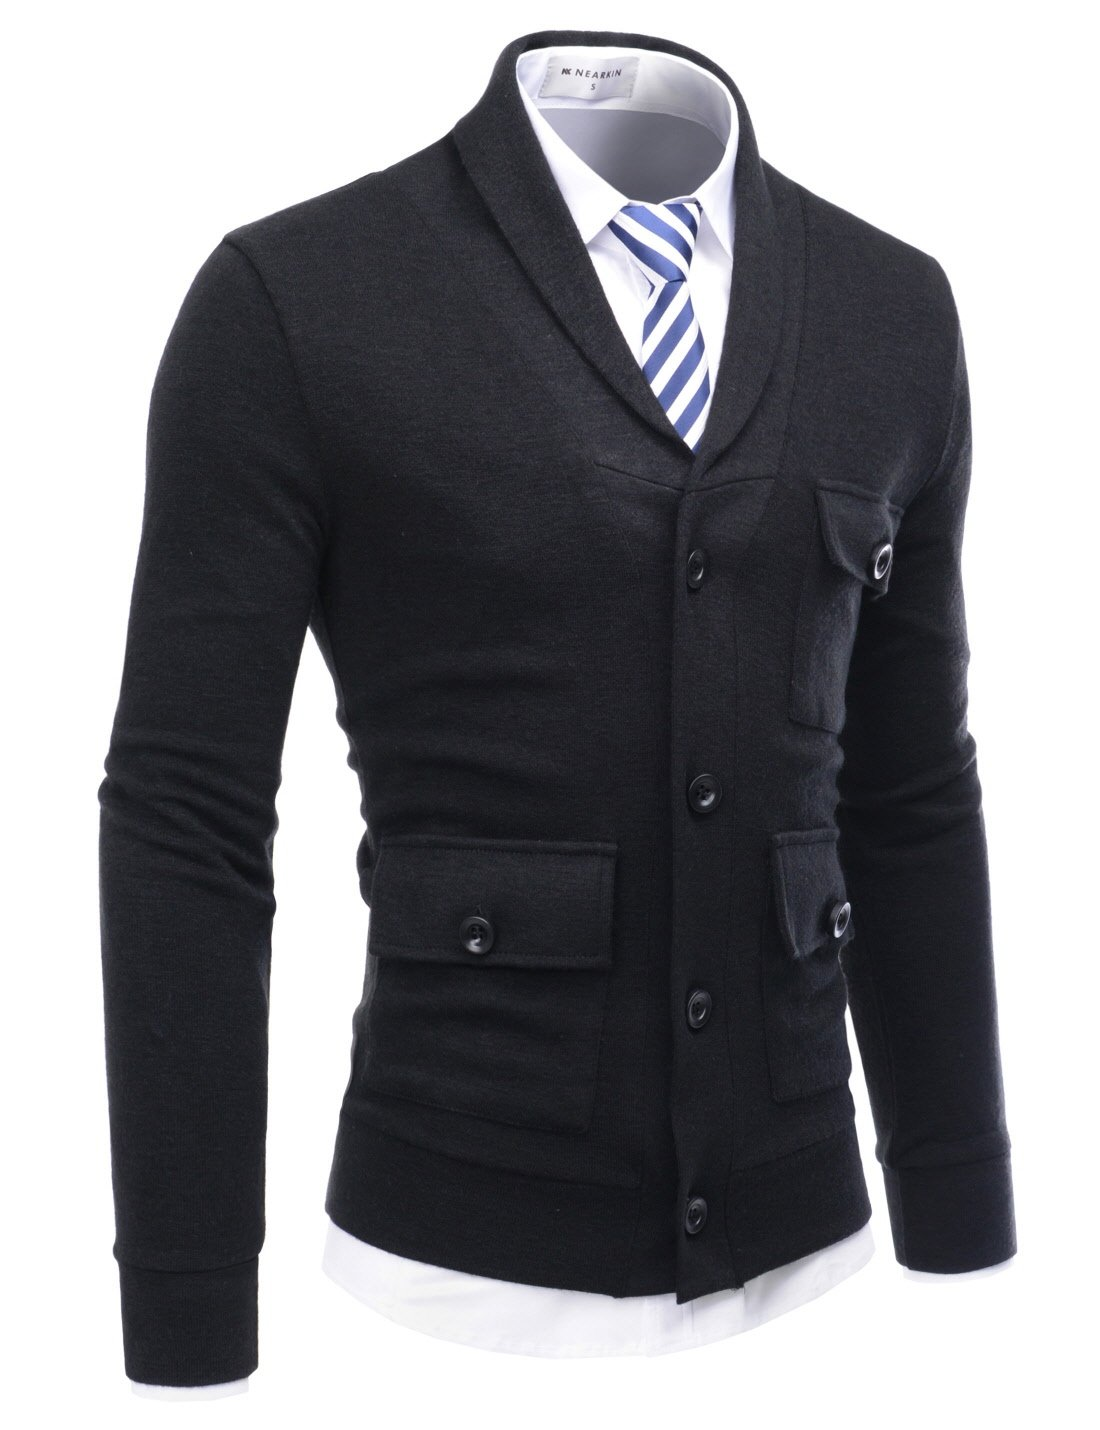 NEARKIN (NKNKCD133) Beloved Mens City Casual Shawl Collar Urbane Knitted Cardigan BLACK US M(Tag size M)